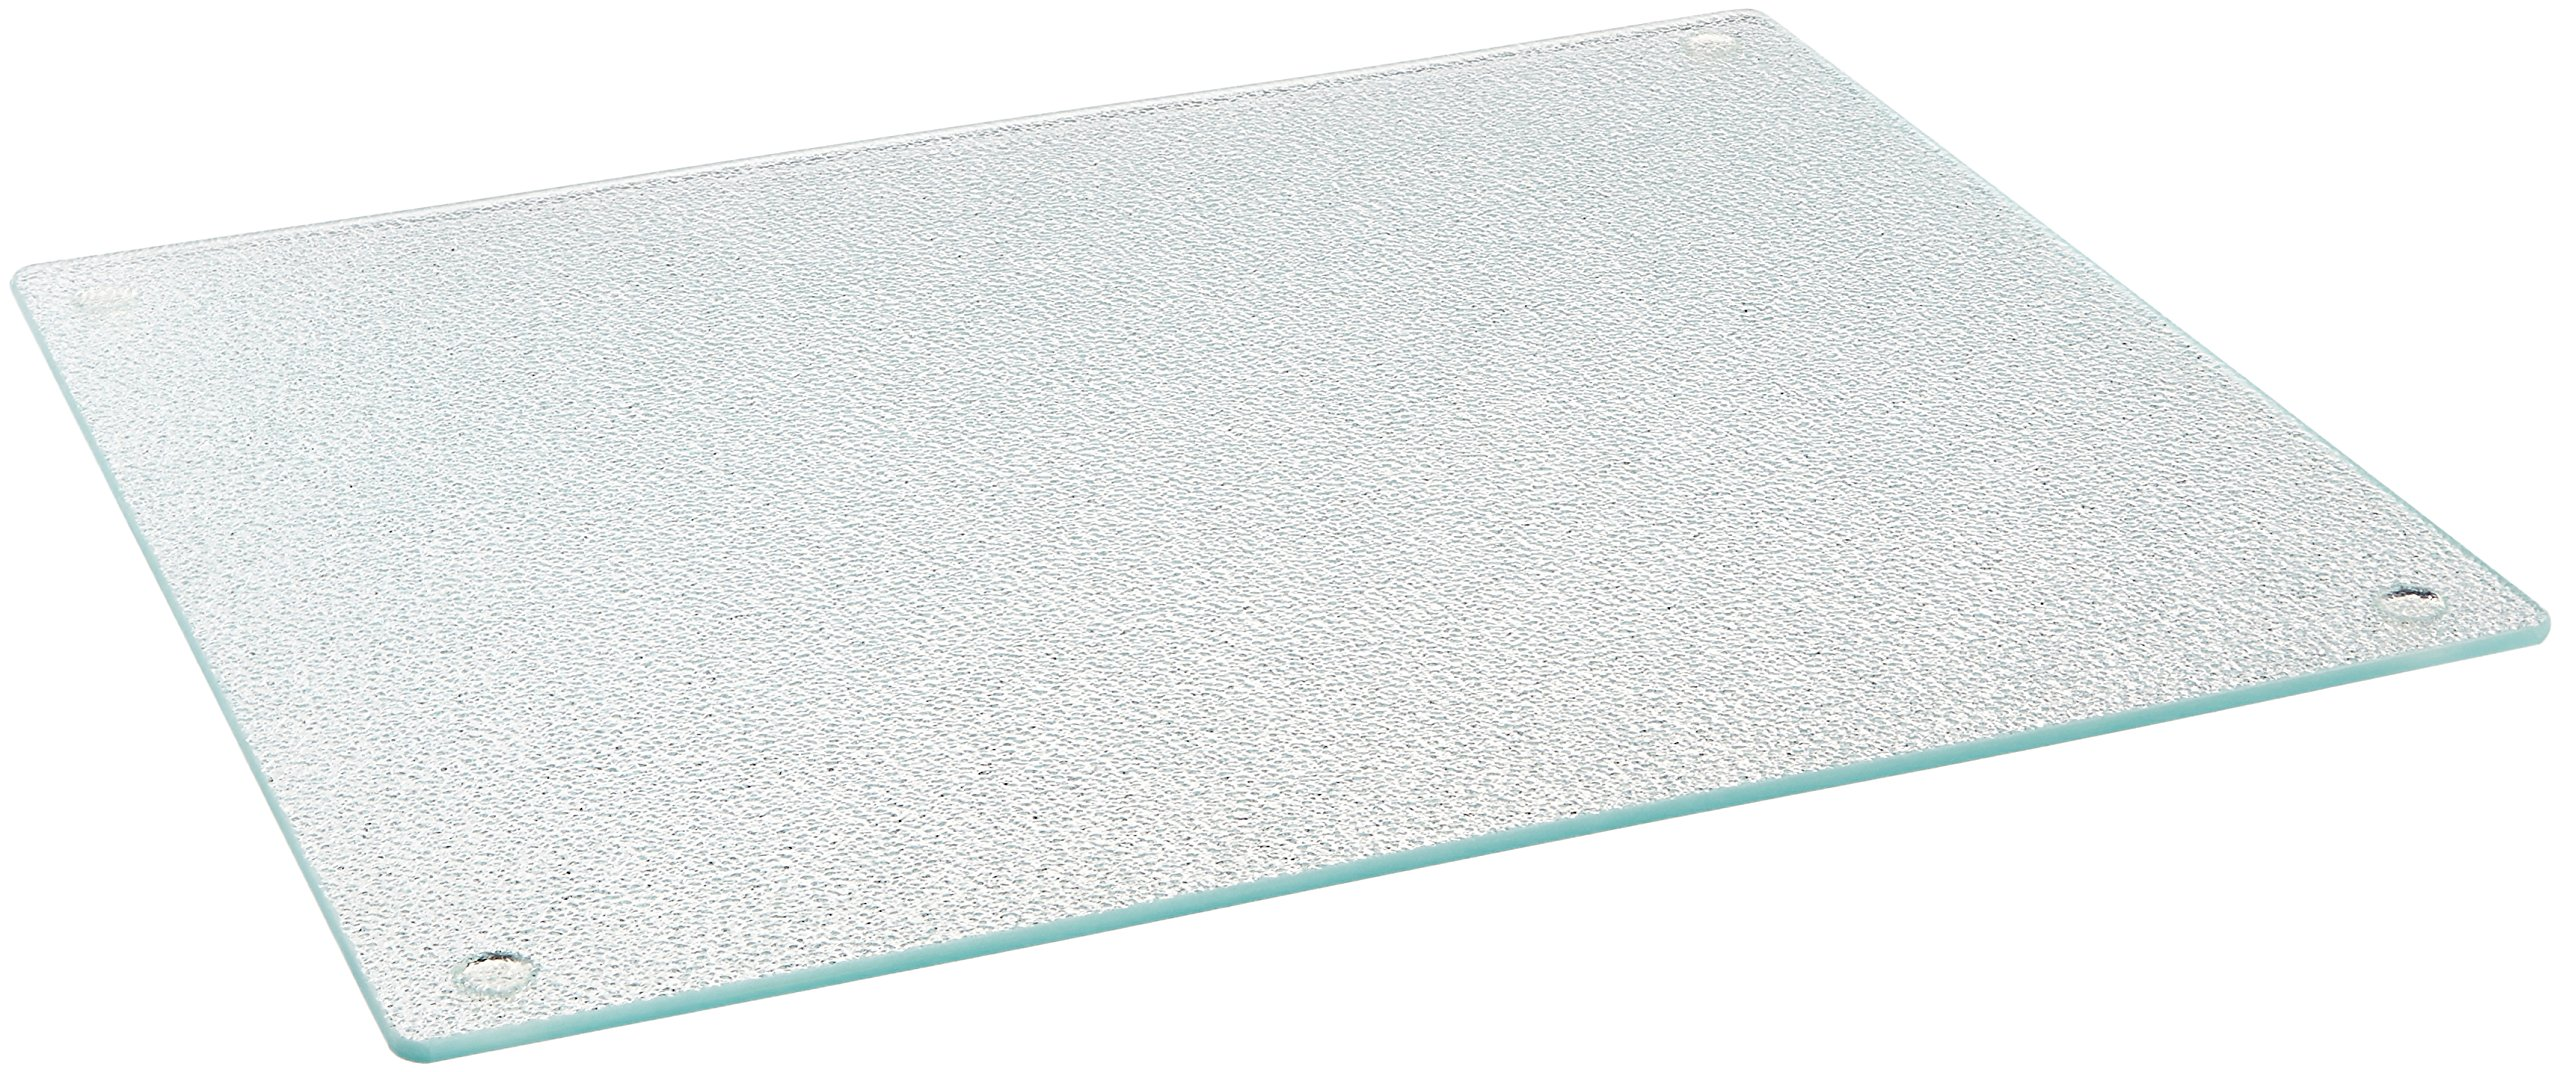 "Farberware Glass Utility Cutting Board, 12-Inch-by-14-Inch, 12"" x 14"", Clear"